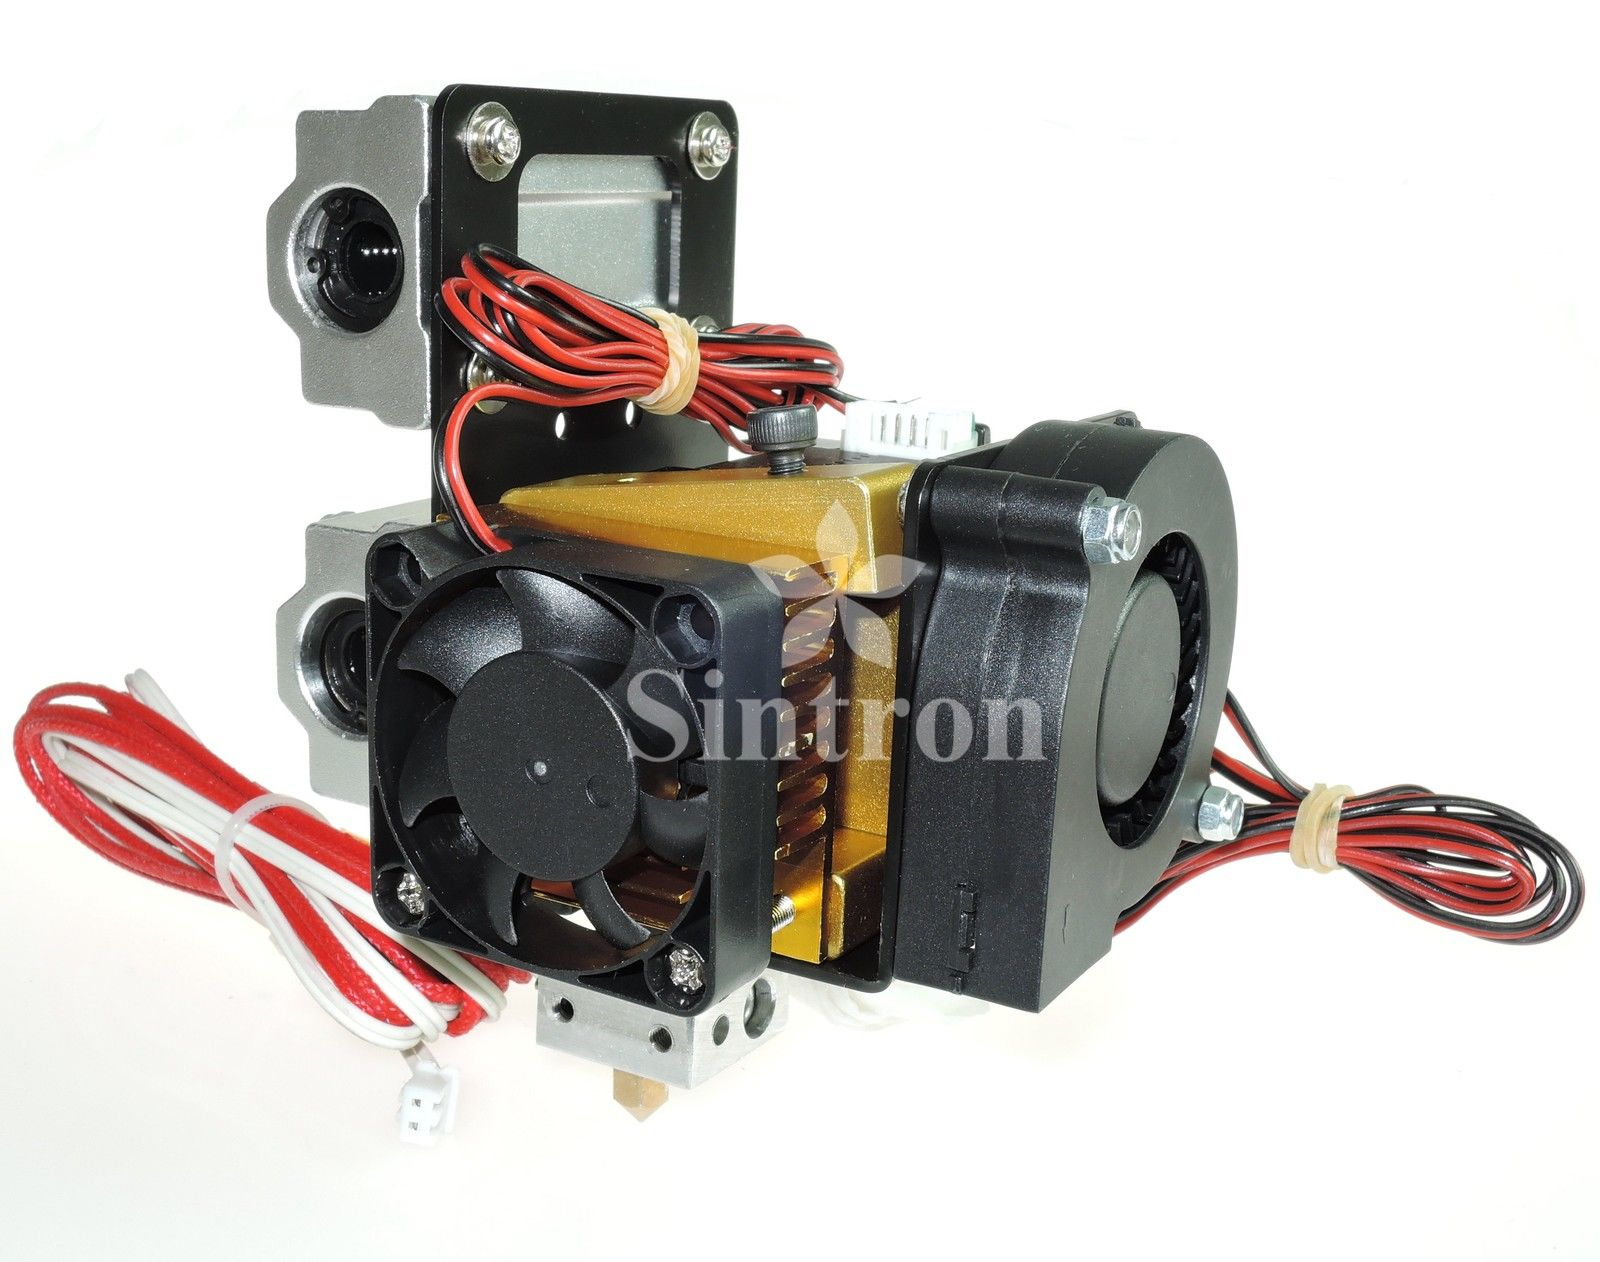 Picture of Sintron TW-101 3d Printer Assembly Guide